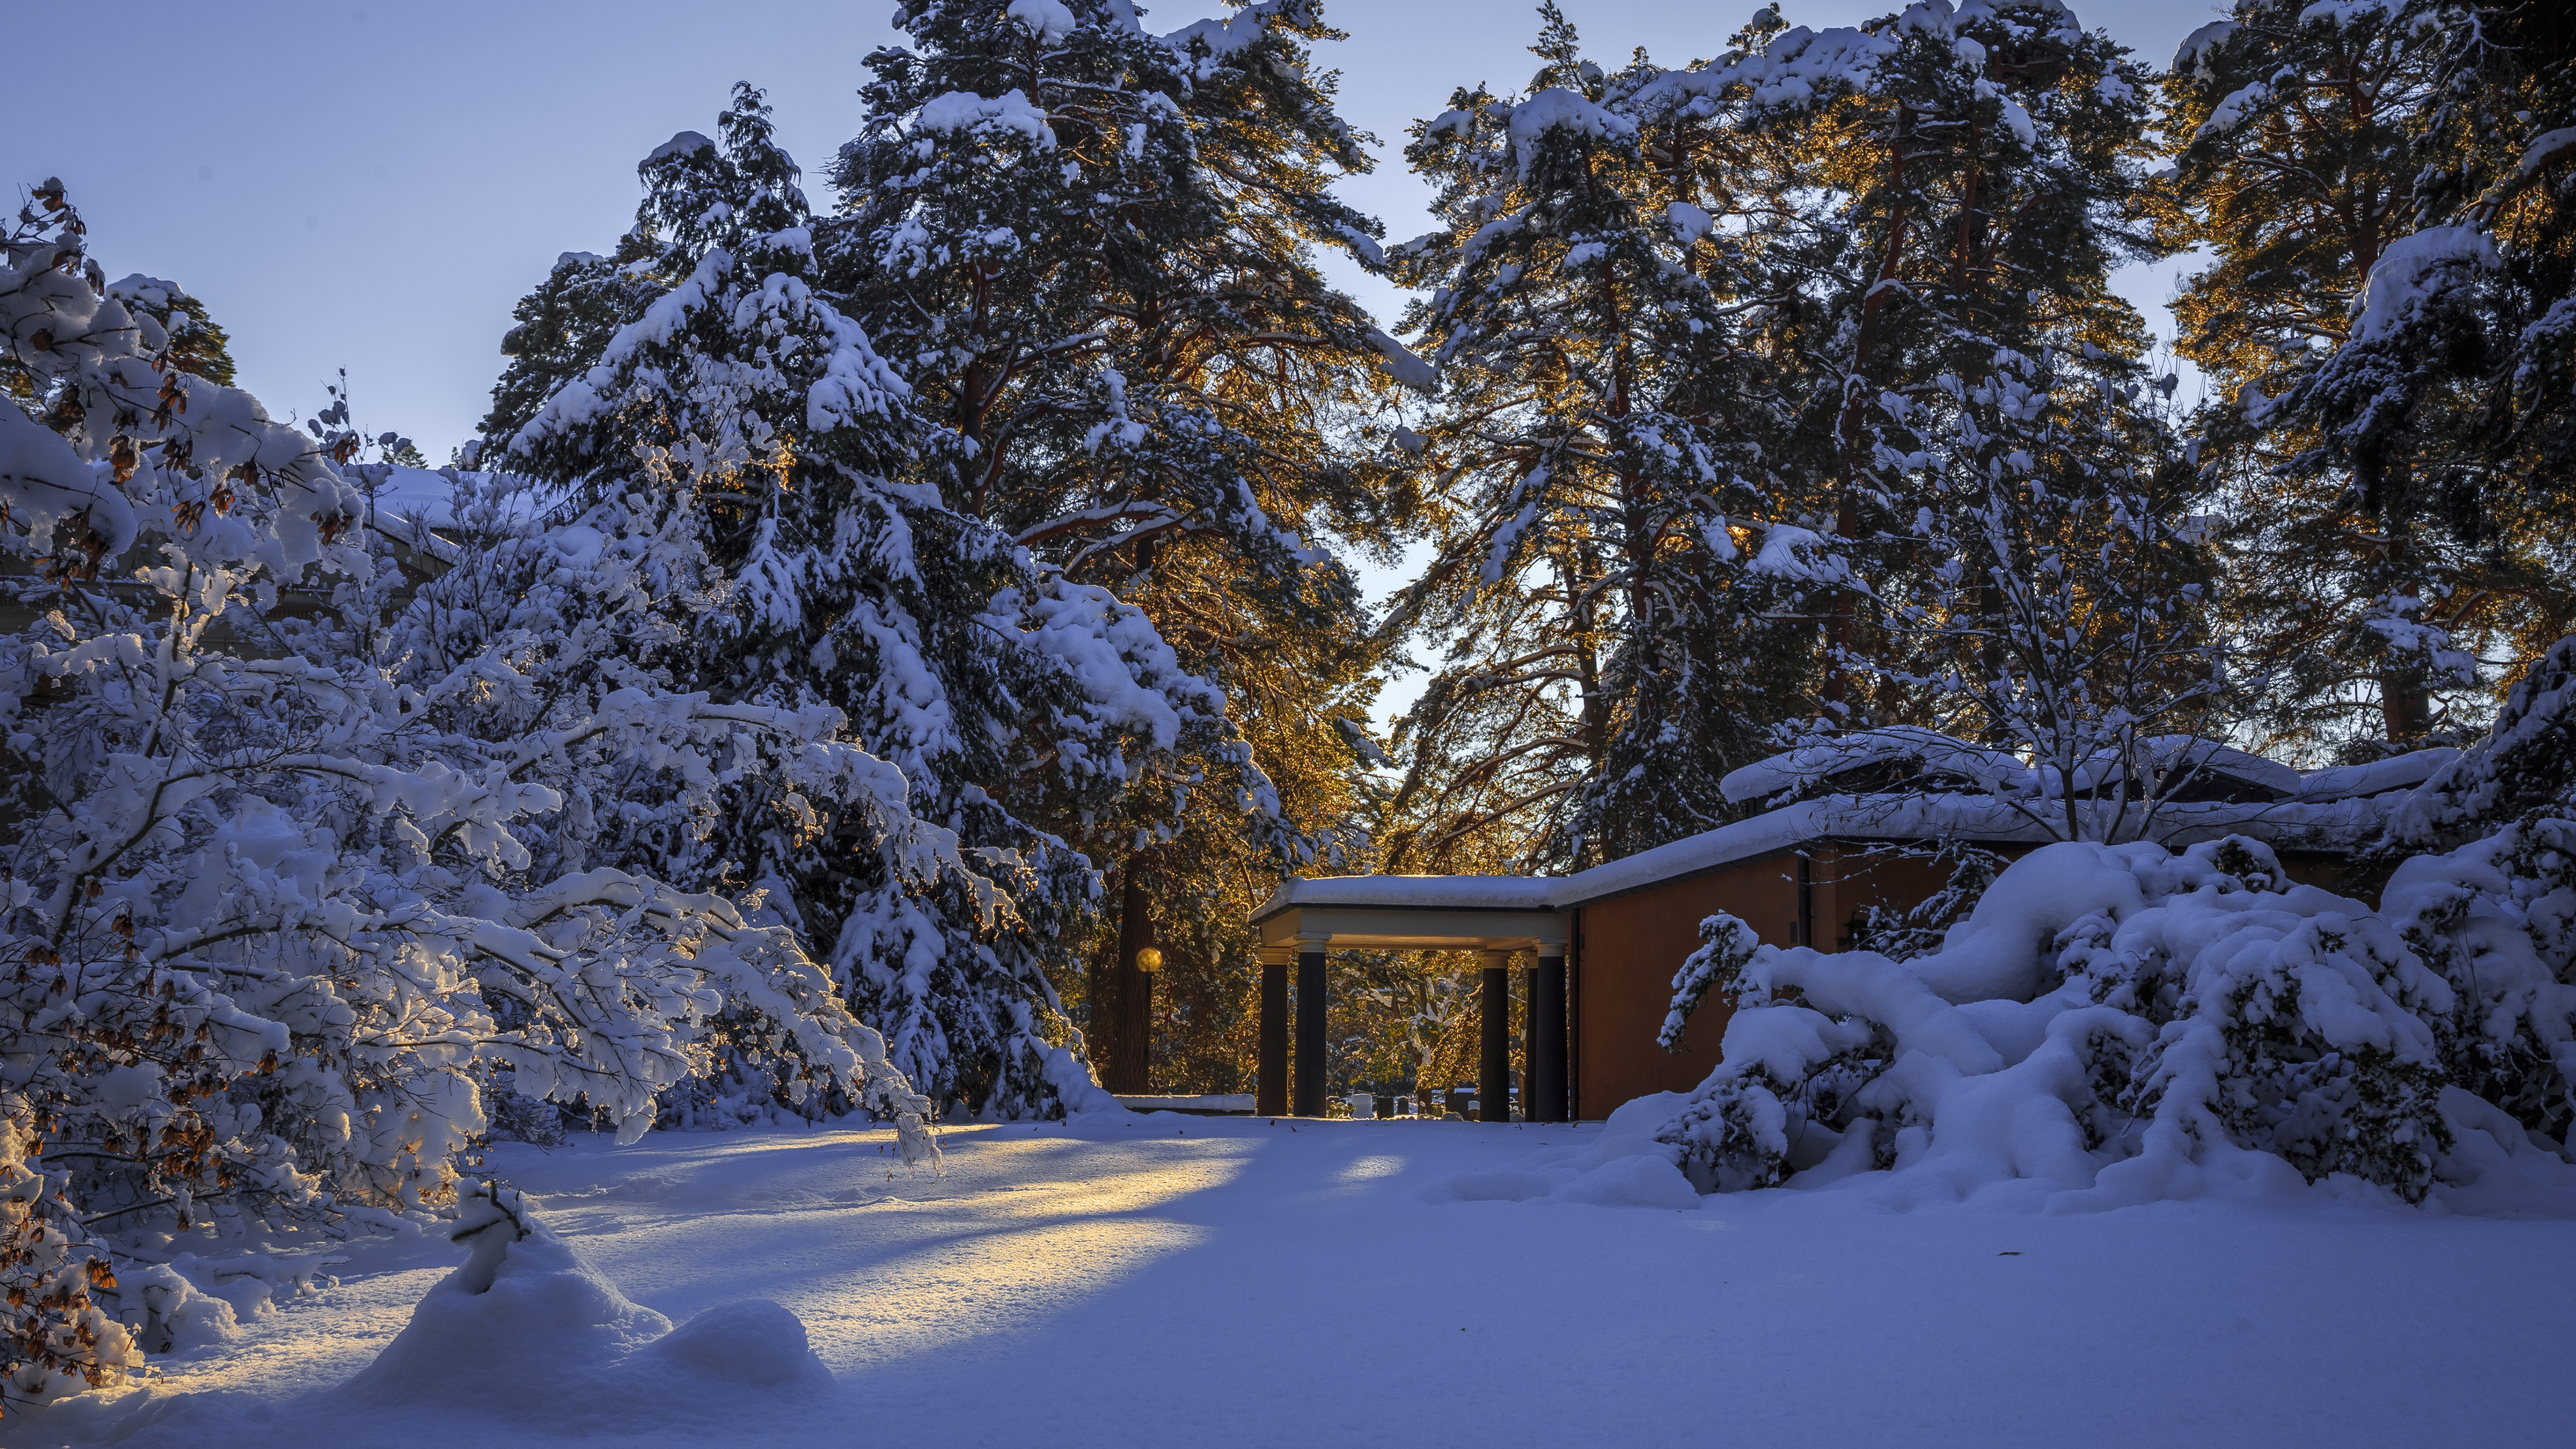 House in the snowy forest wallpaper